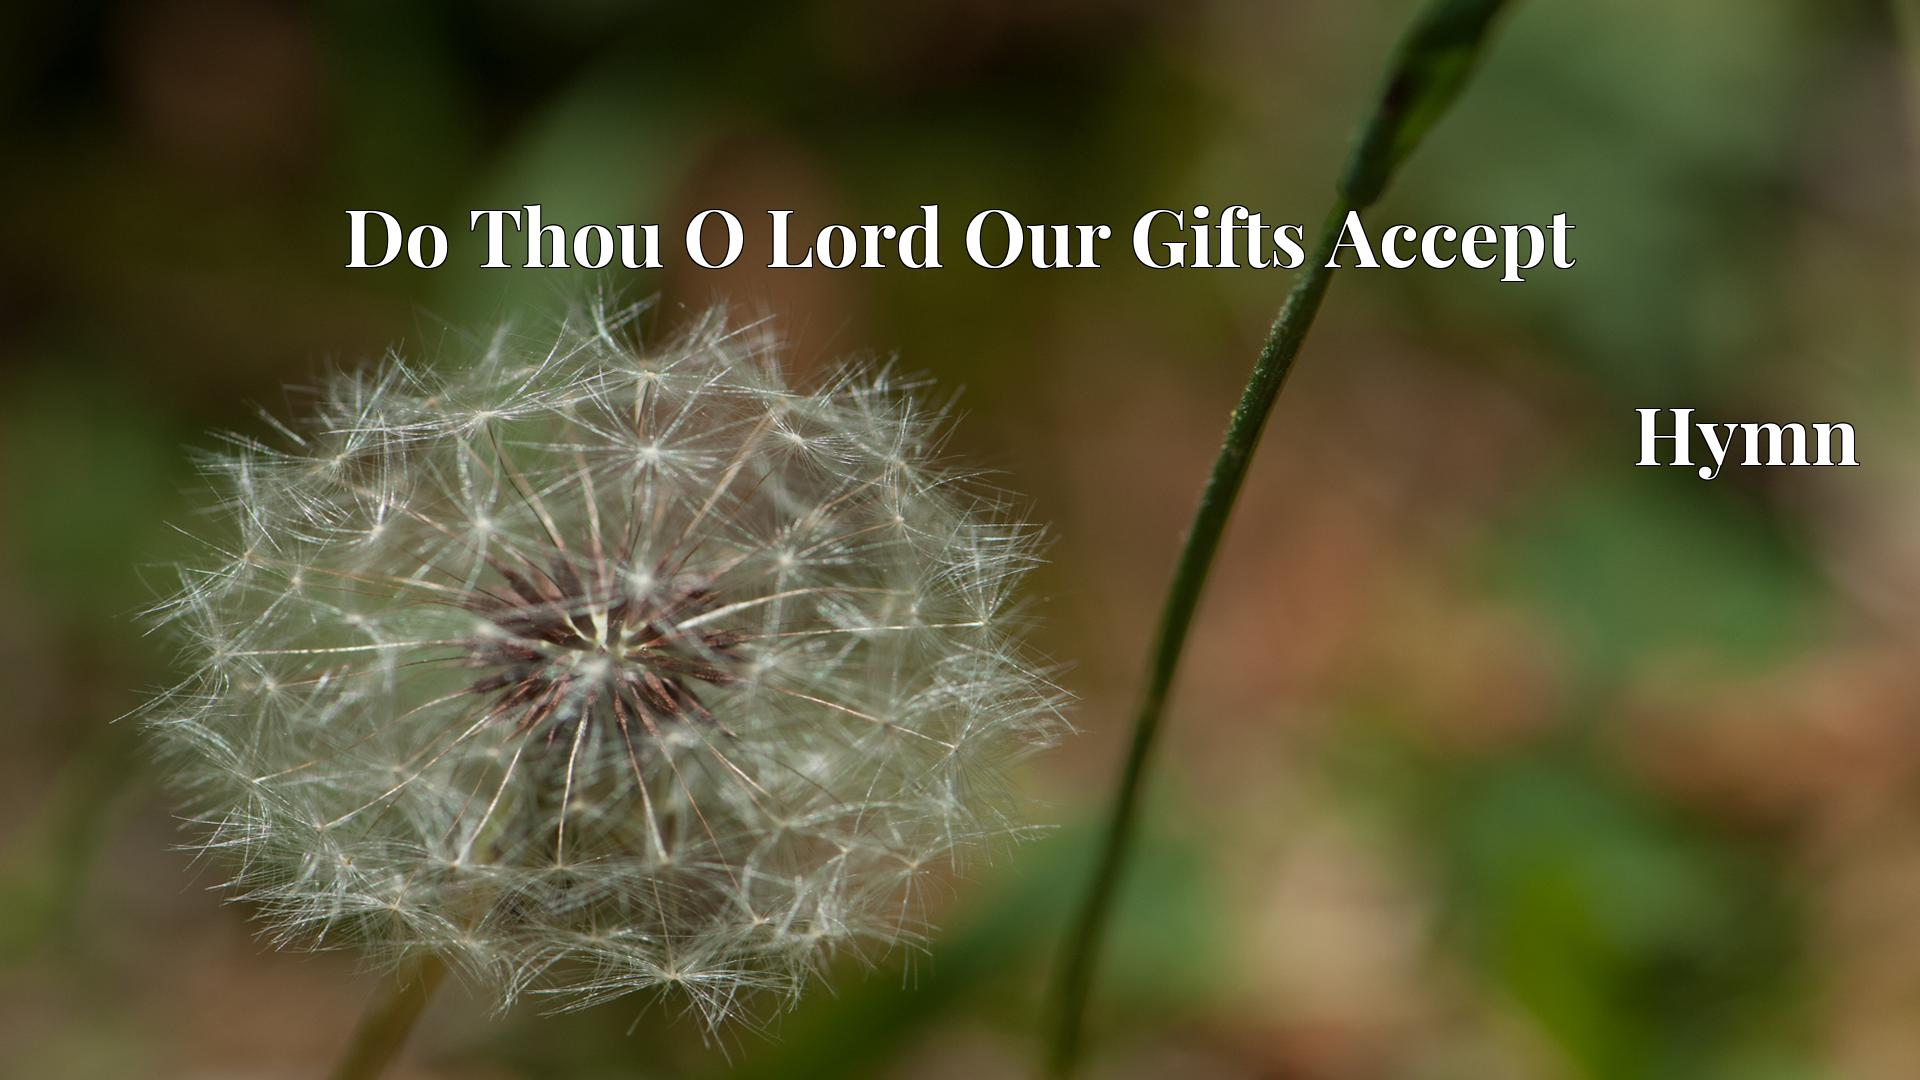 Do Thou O Lord Our Gifts Accept - Hymn